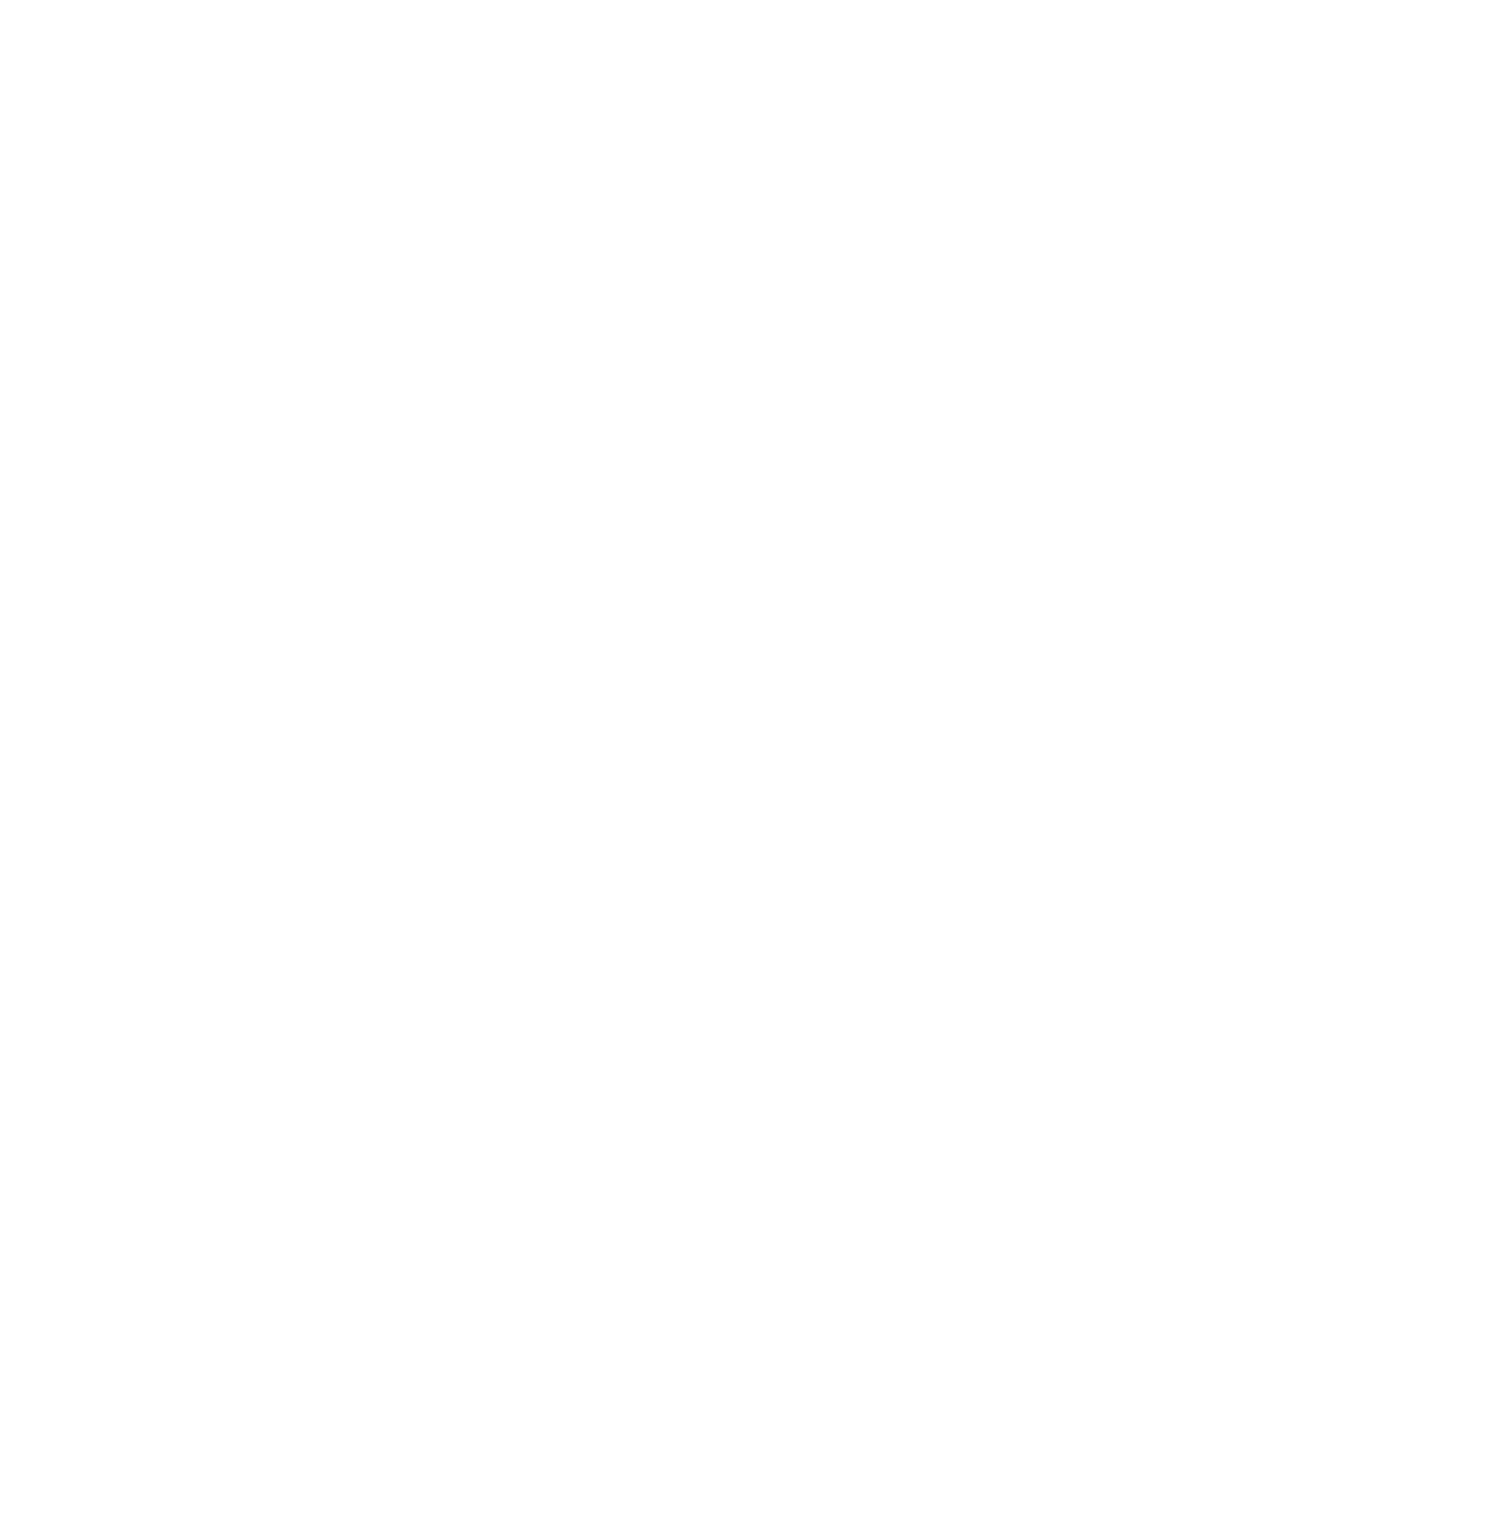 The Make co.